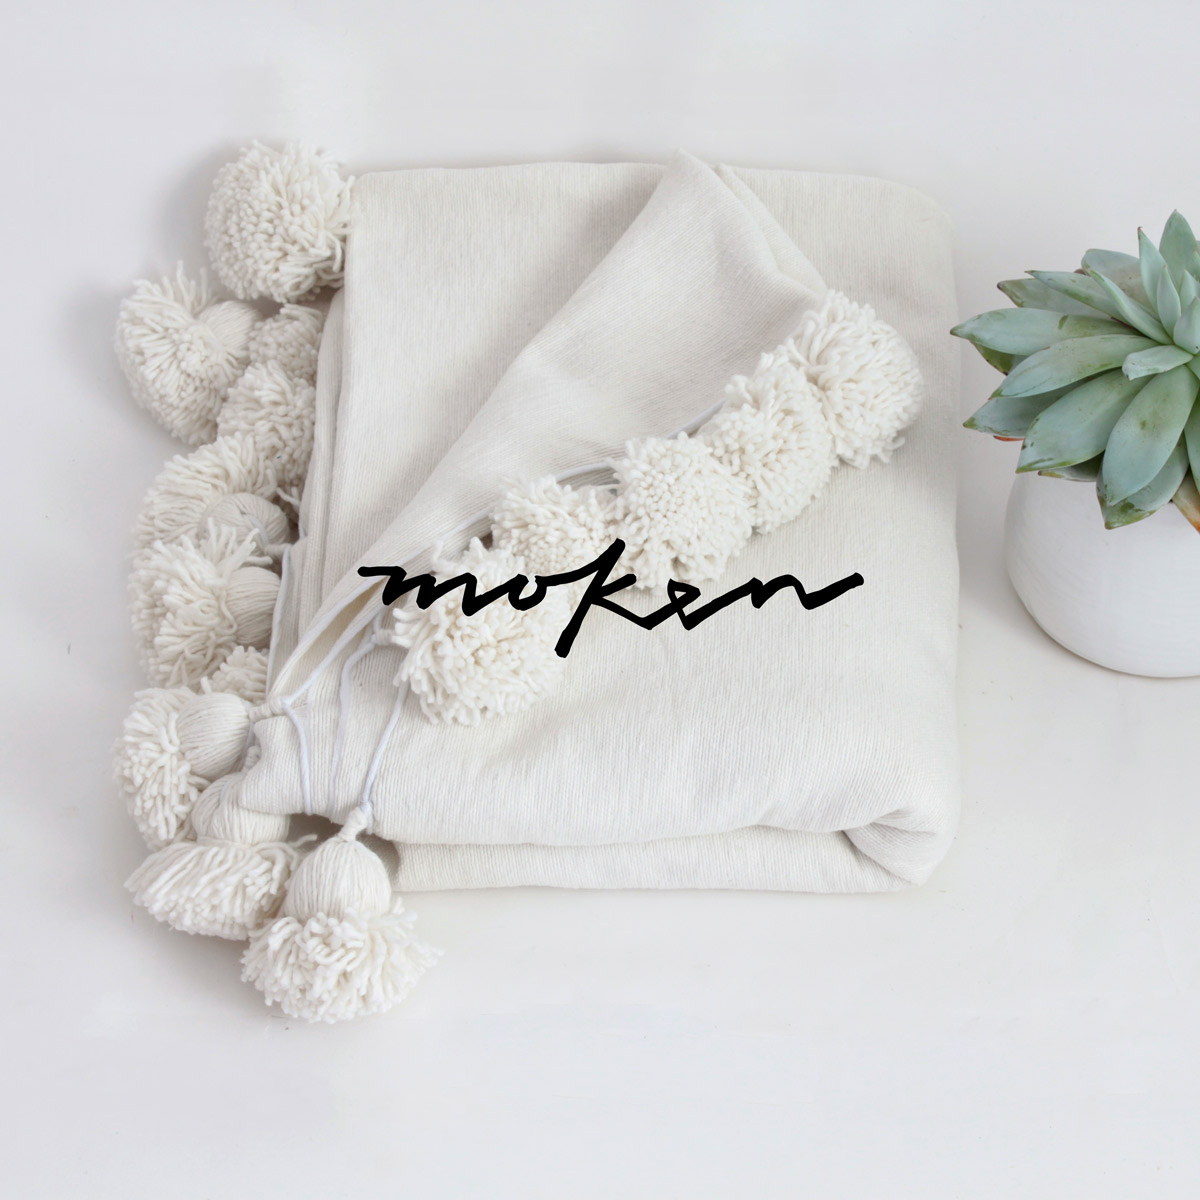 Moken - Pom Pom Blanket - Laura Ramsay Design - Branding and Packaging